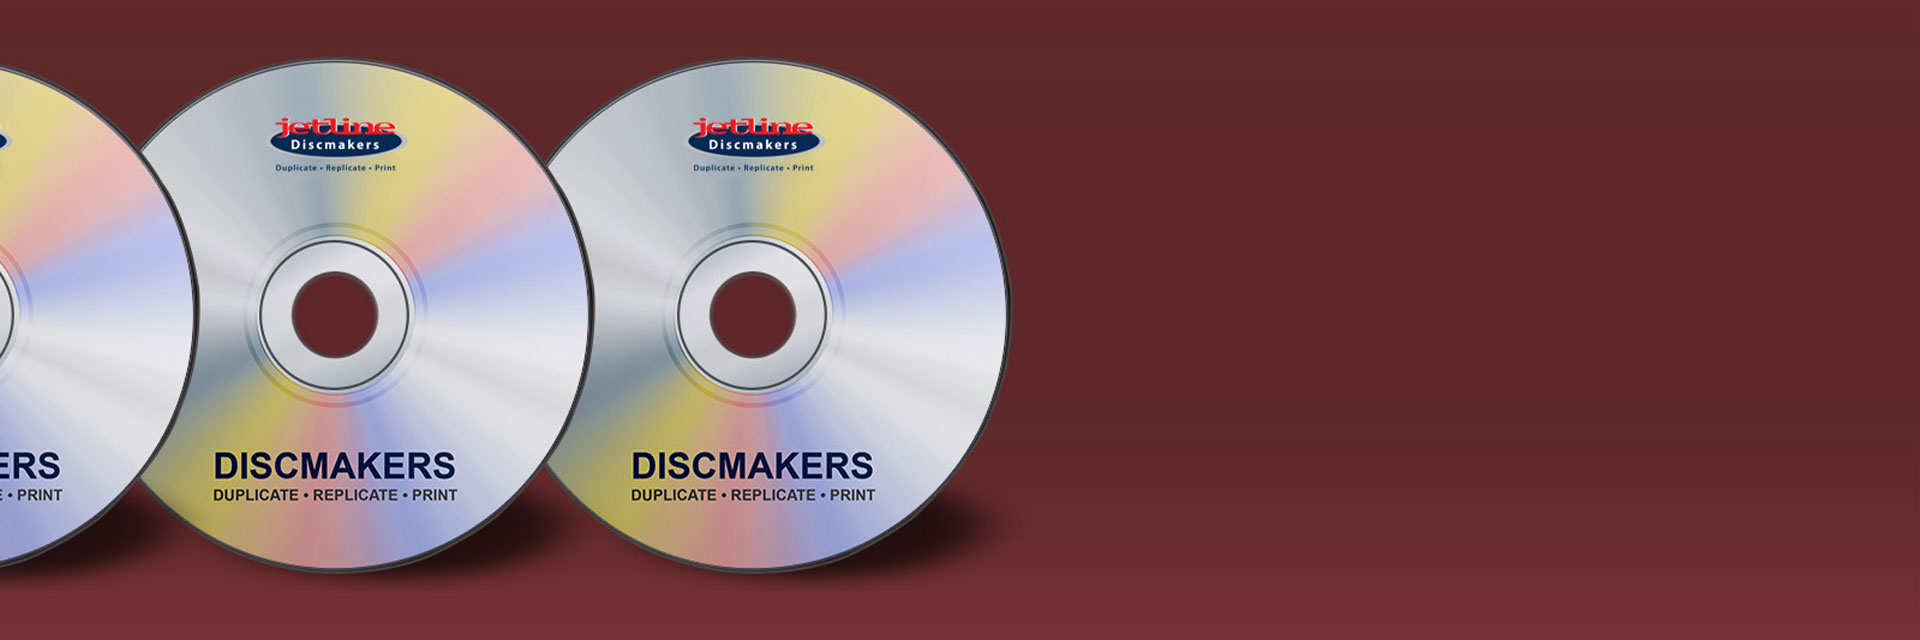 jetline-discmakers-slider